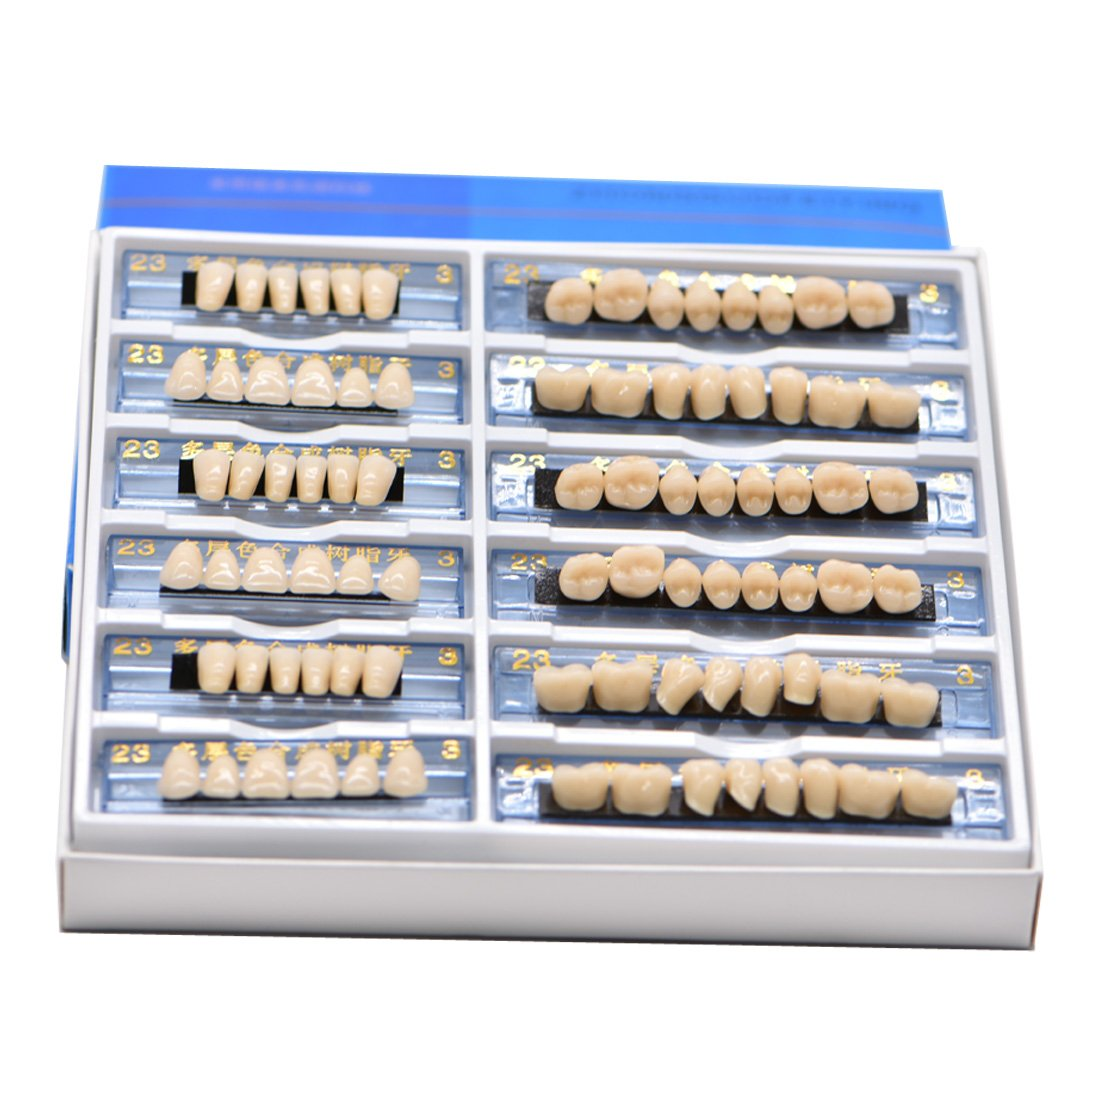 168 Pcs Dental Complete Acrylic Resin Denture False Teeth 6 Sets Synthetic Polymer Resin Denture Teeth 23 A3 Upper + Lower Dental Materials (1 Box)